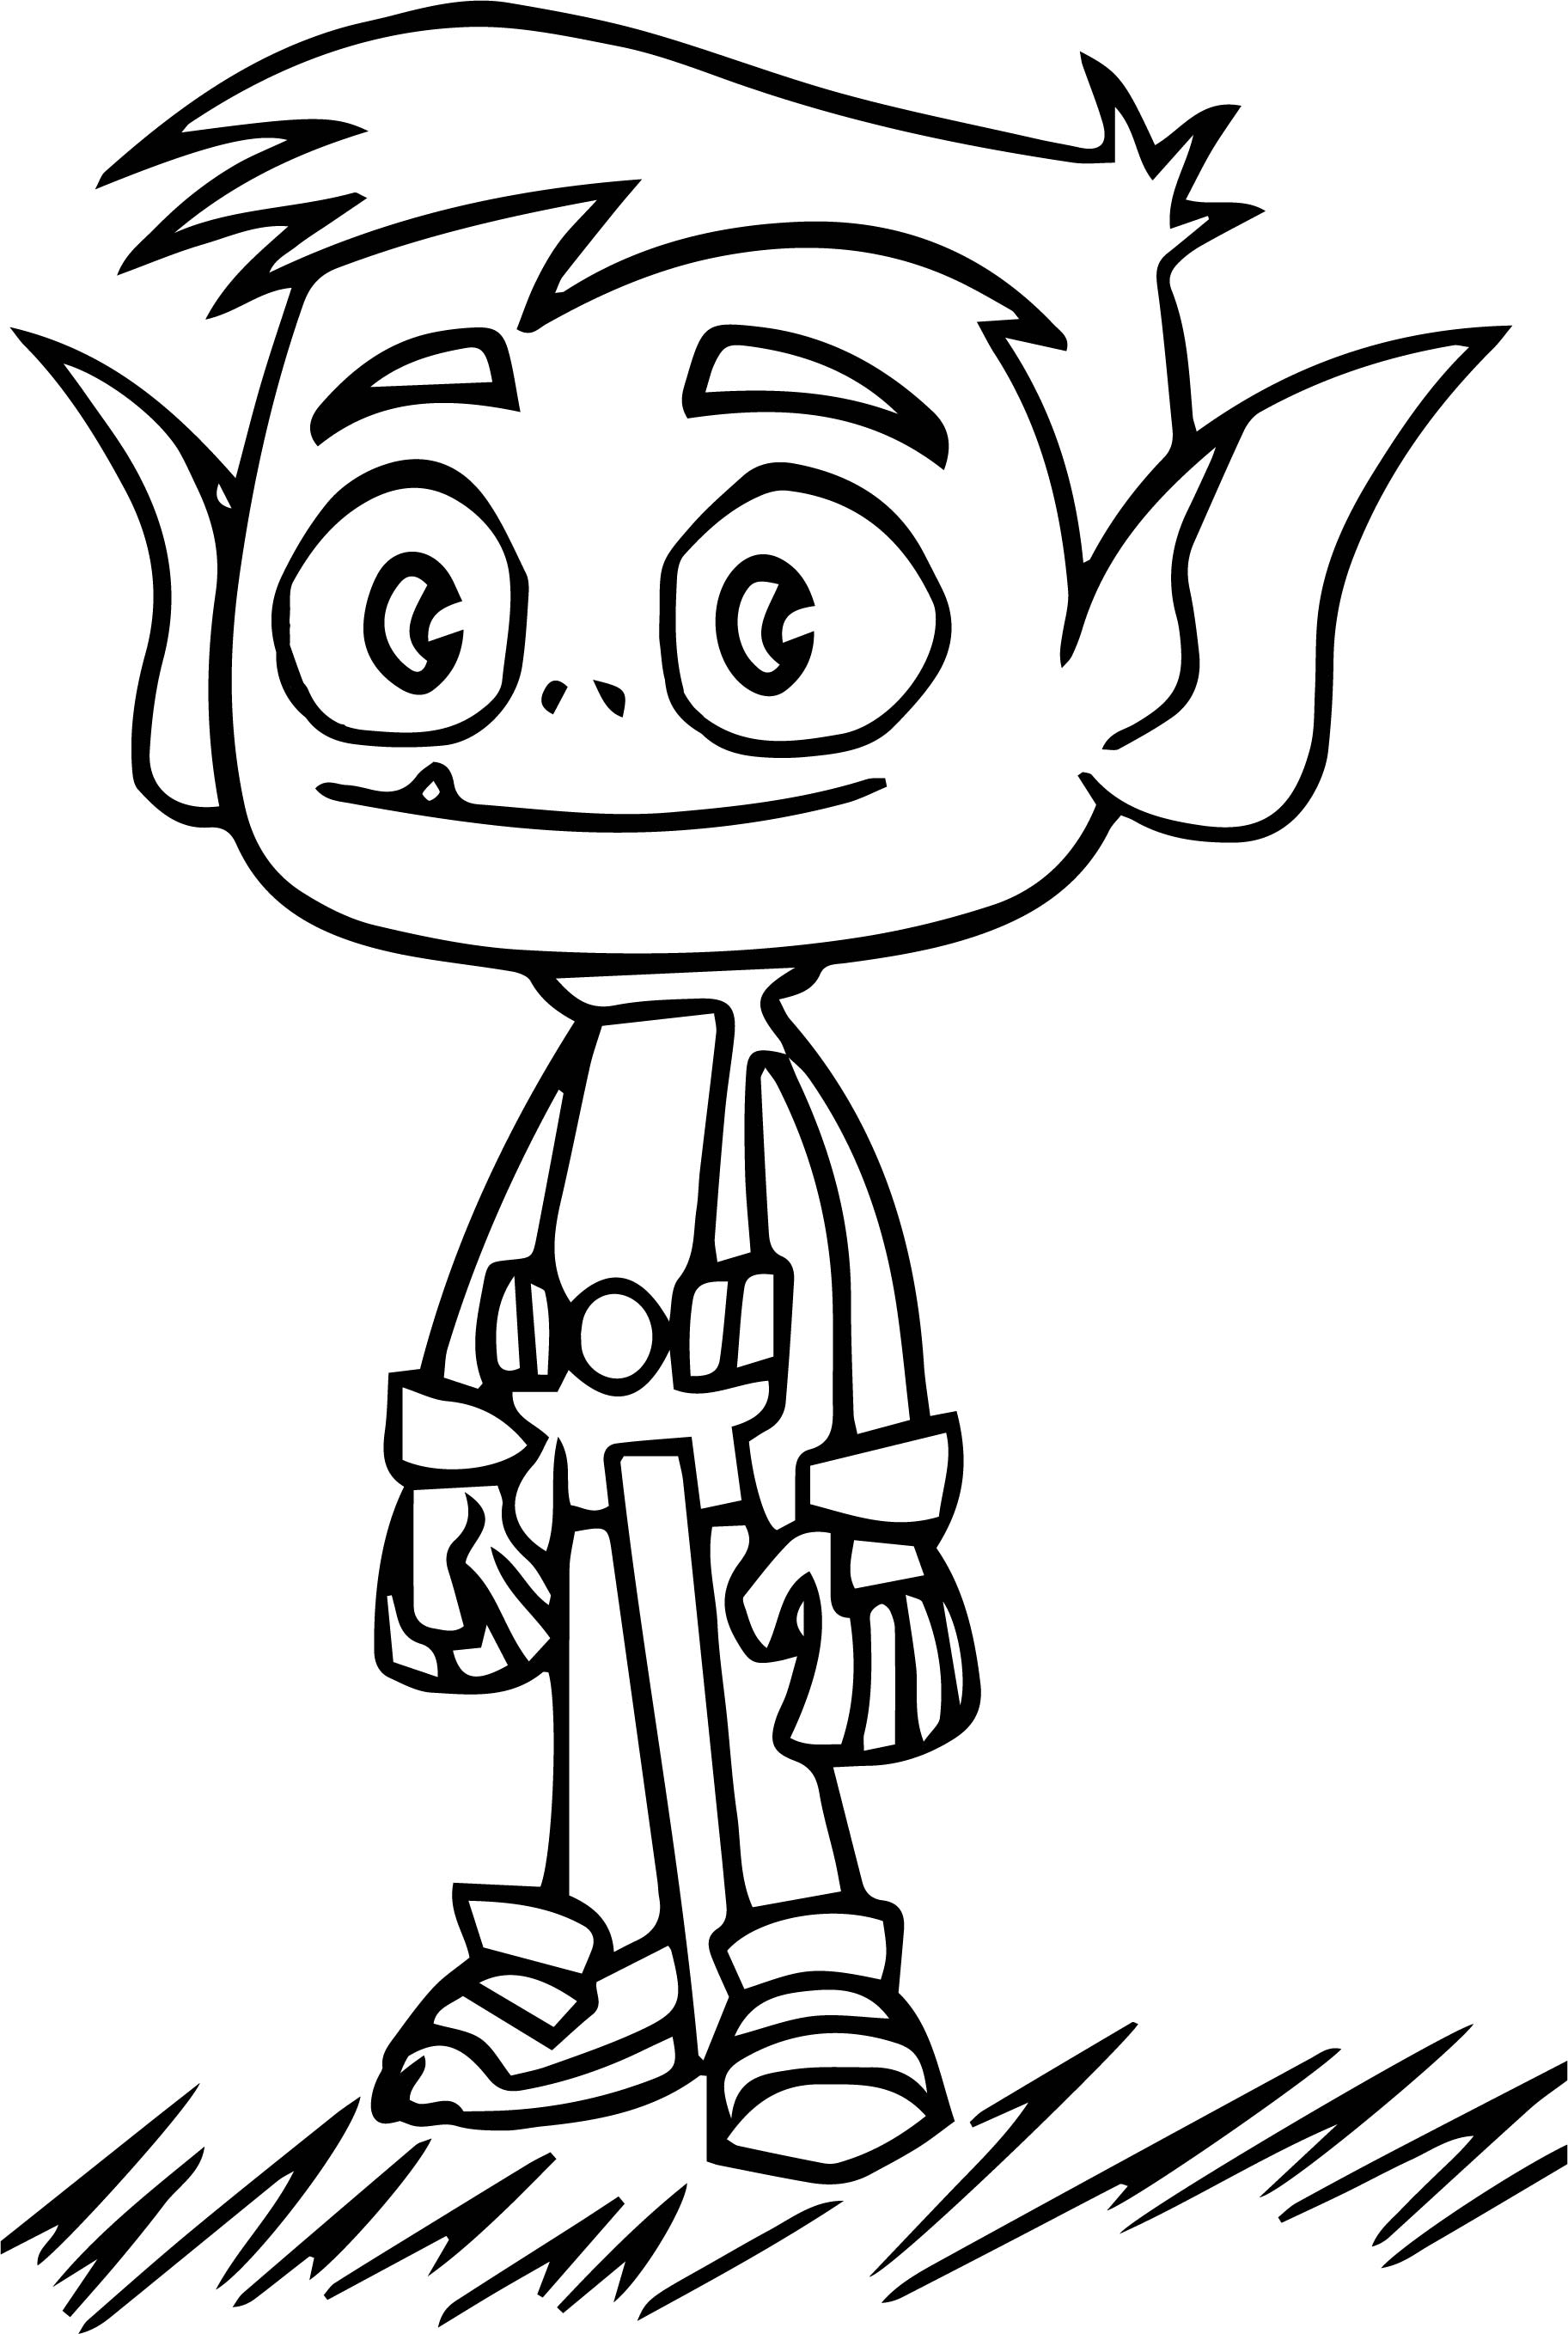 Teen Titans Go On Grass Coloring Page